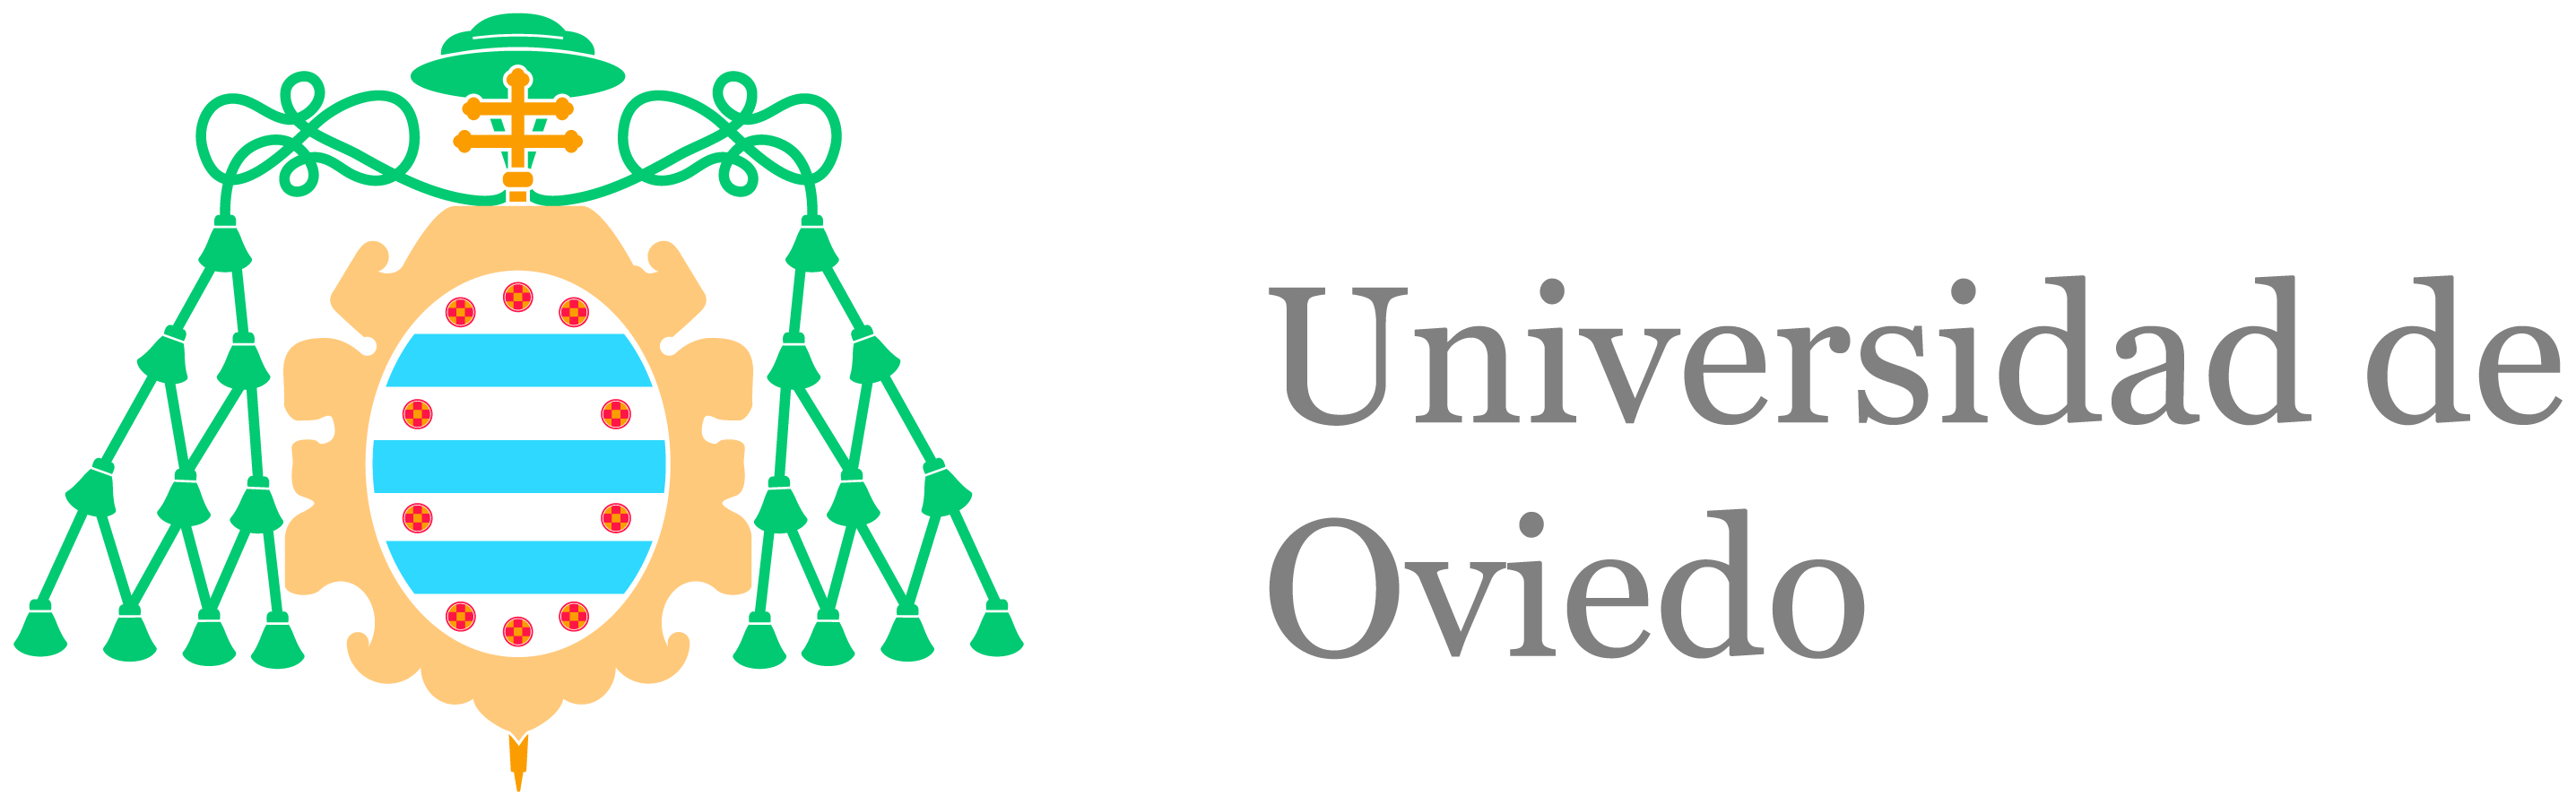 Logotipo Universidad